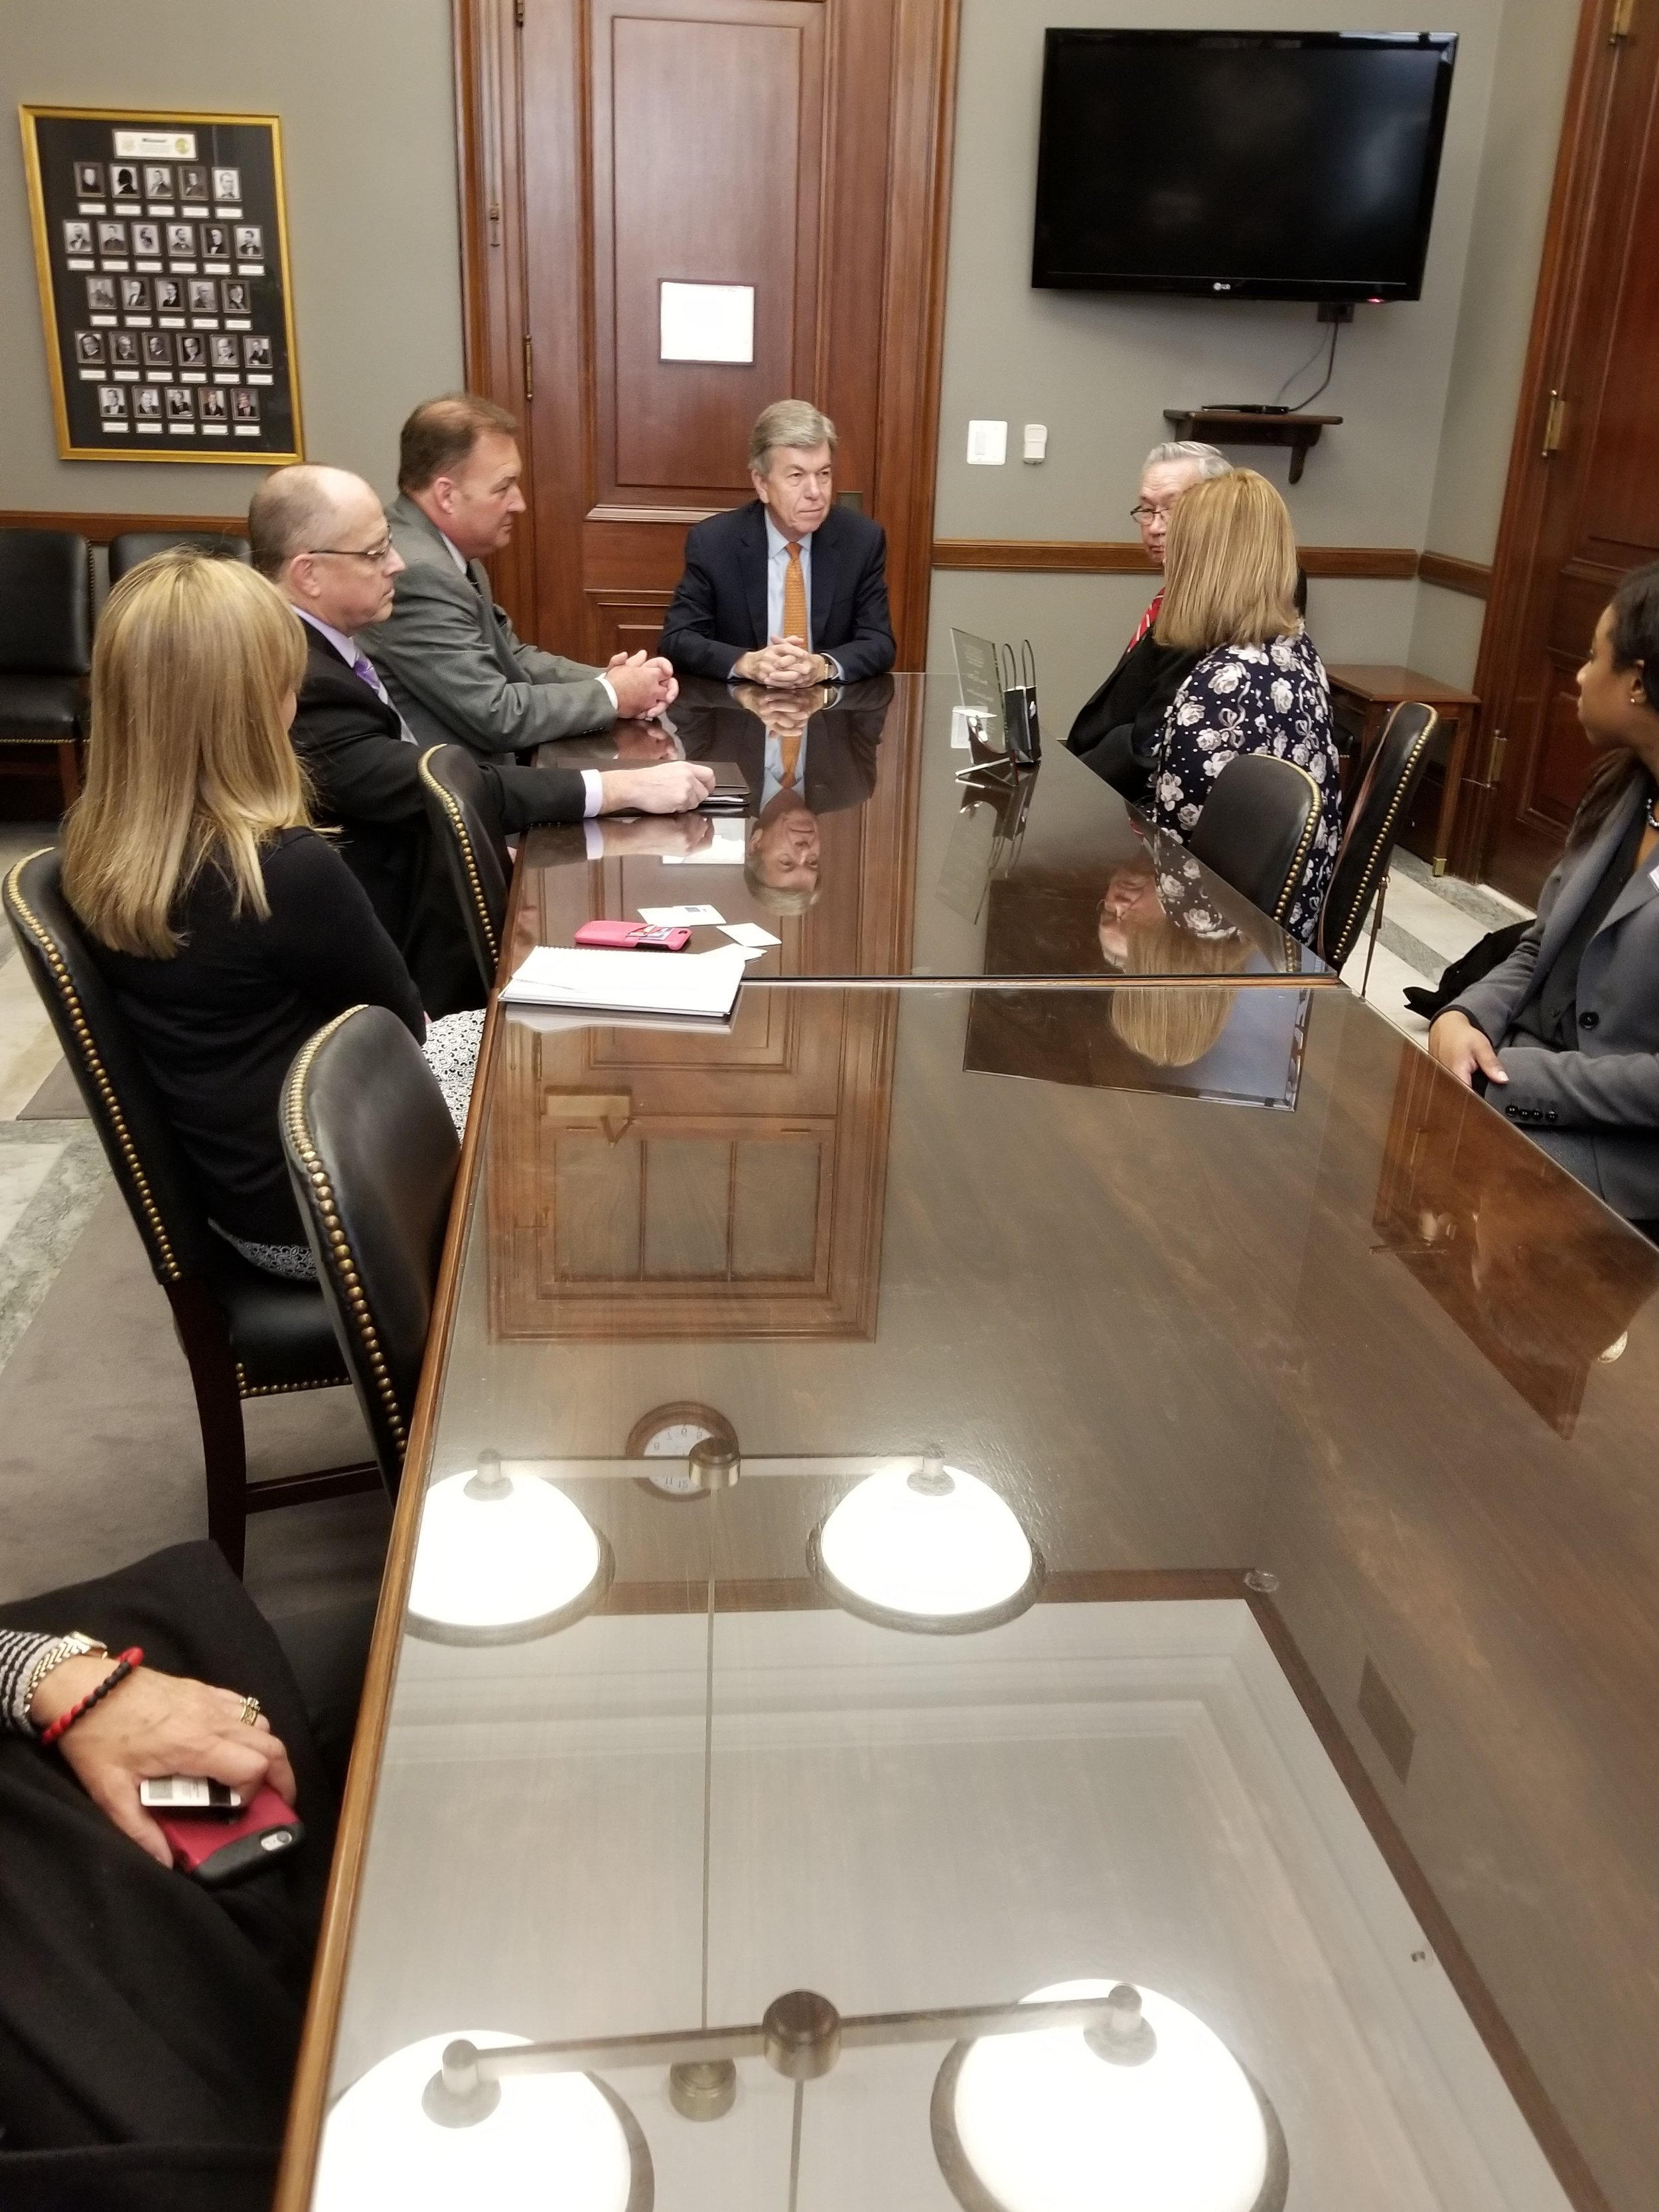 Senator Roy Blunt meets with the Campaign for Home Energy Assistance team and delegates from Missouri